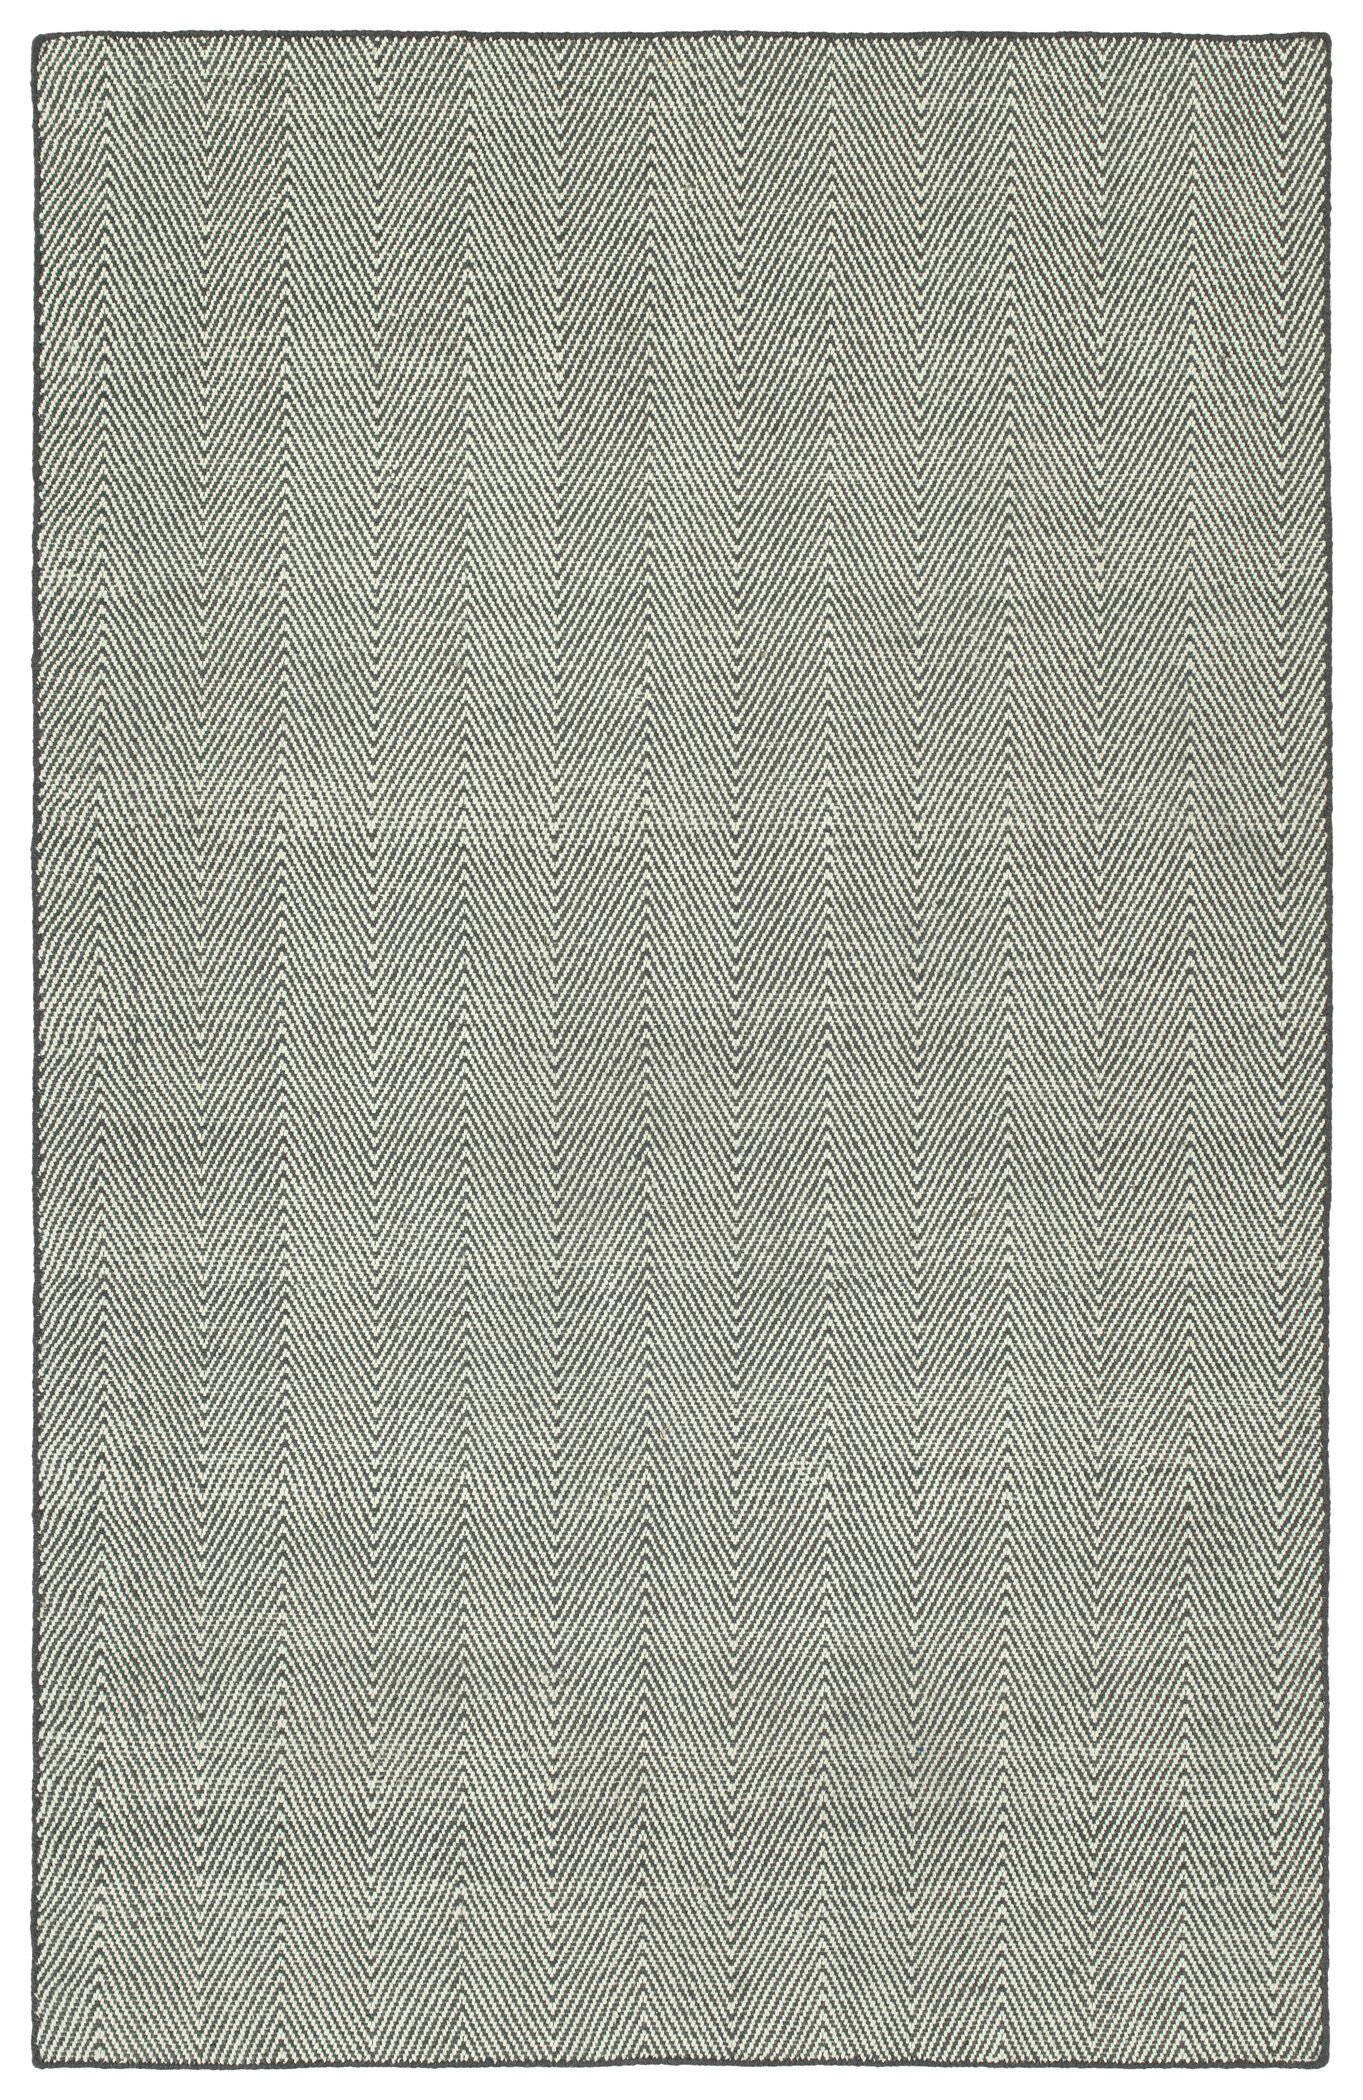 Buell Hand Woven Grey Indoor/Outdoor Area Rug Rug Size: Rectangle 8' x 10'